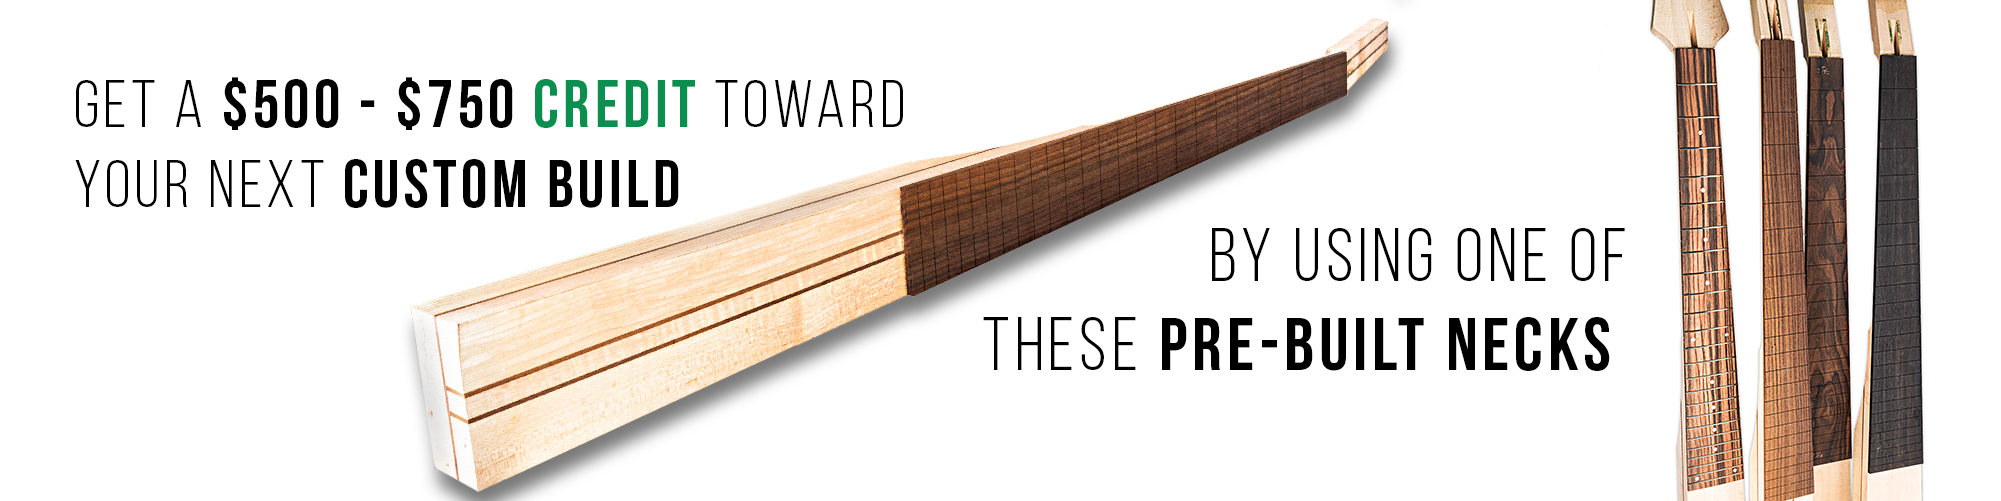 Credit Toward Your Next Custom Build With Pre-Built Necks